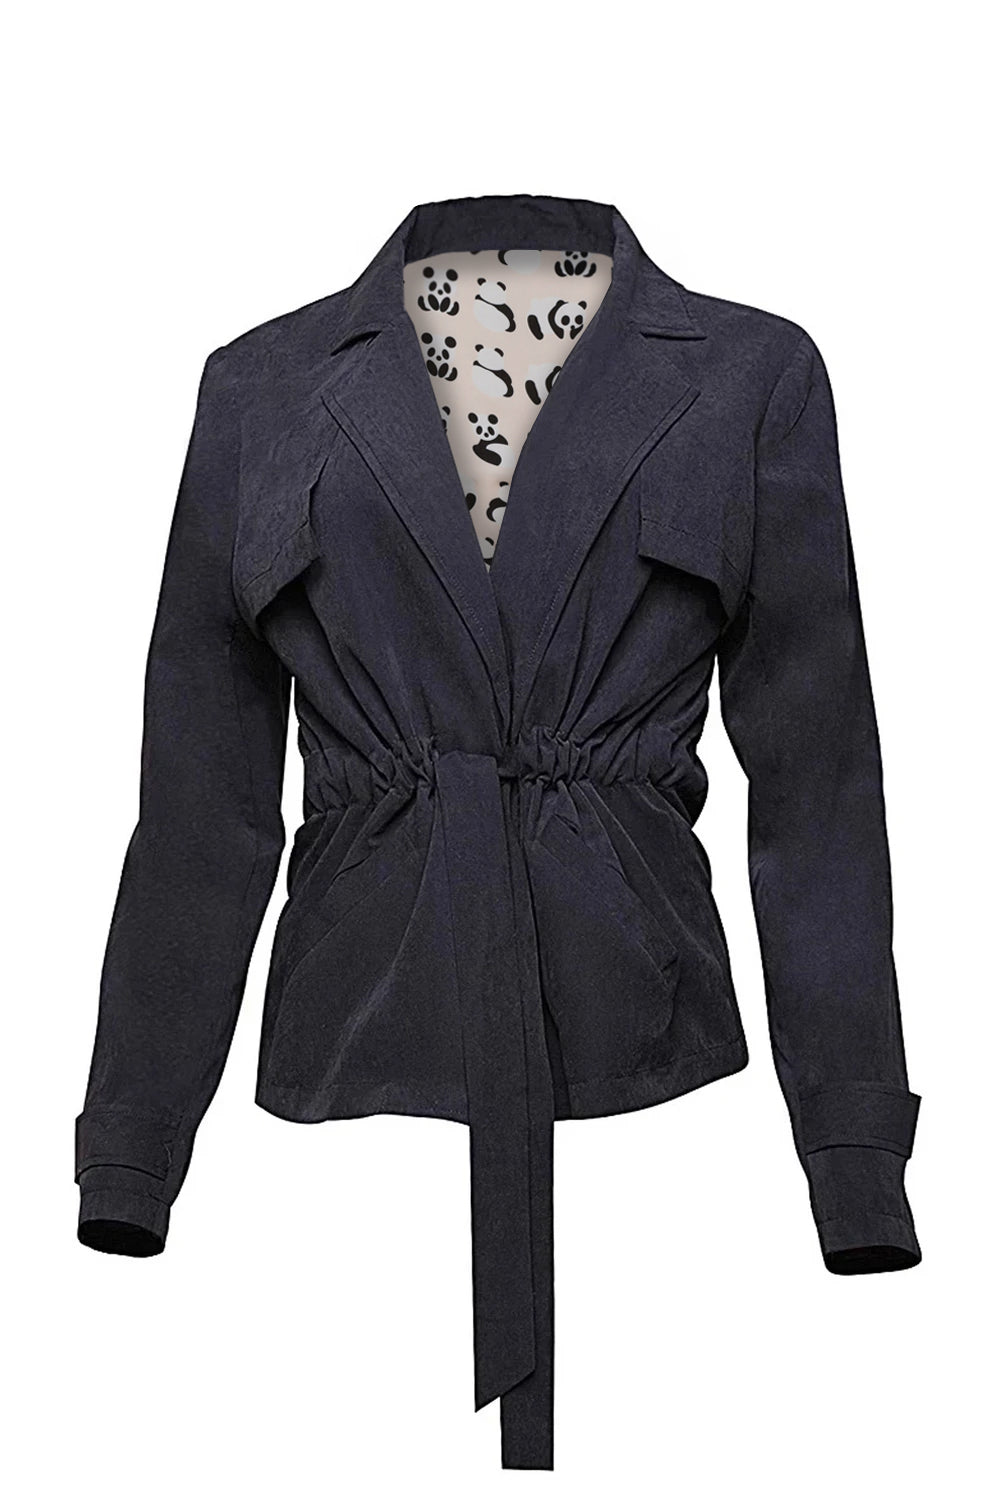 Cropped Belted Trench Coat with Panda Print Lining